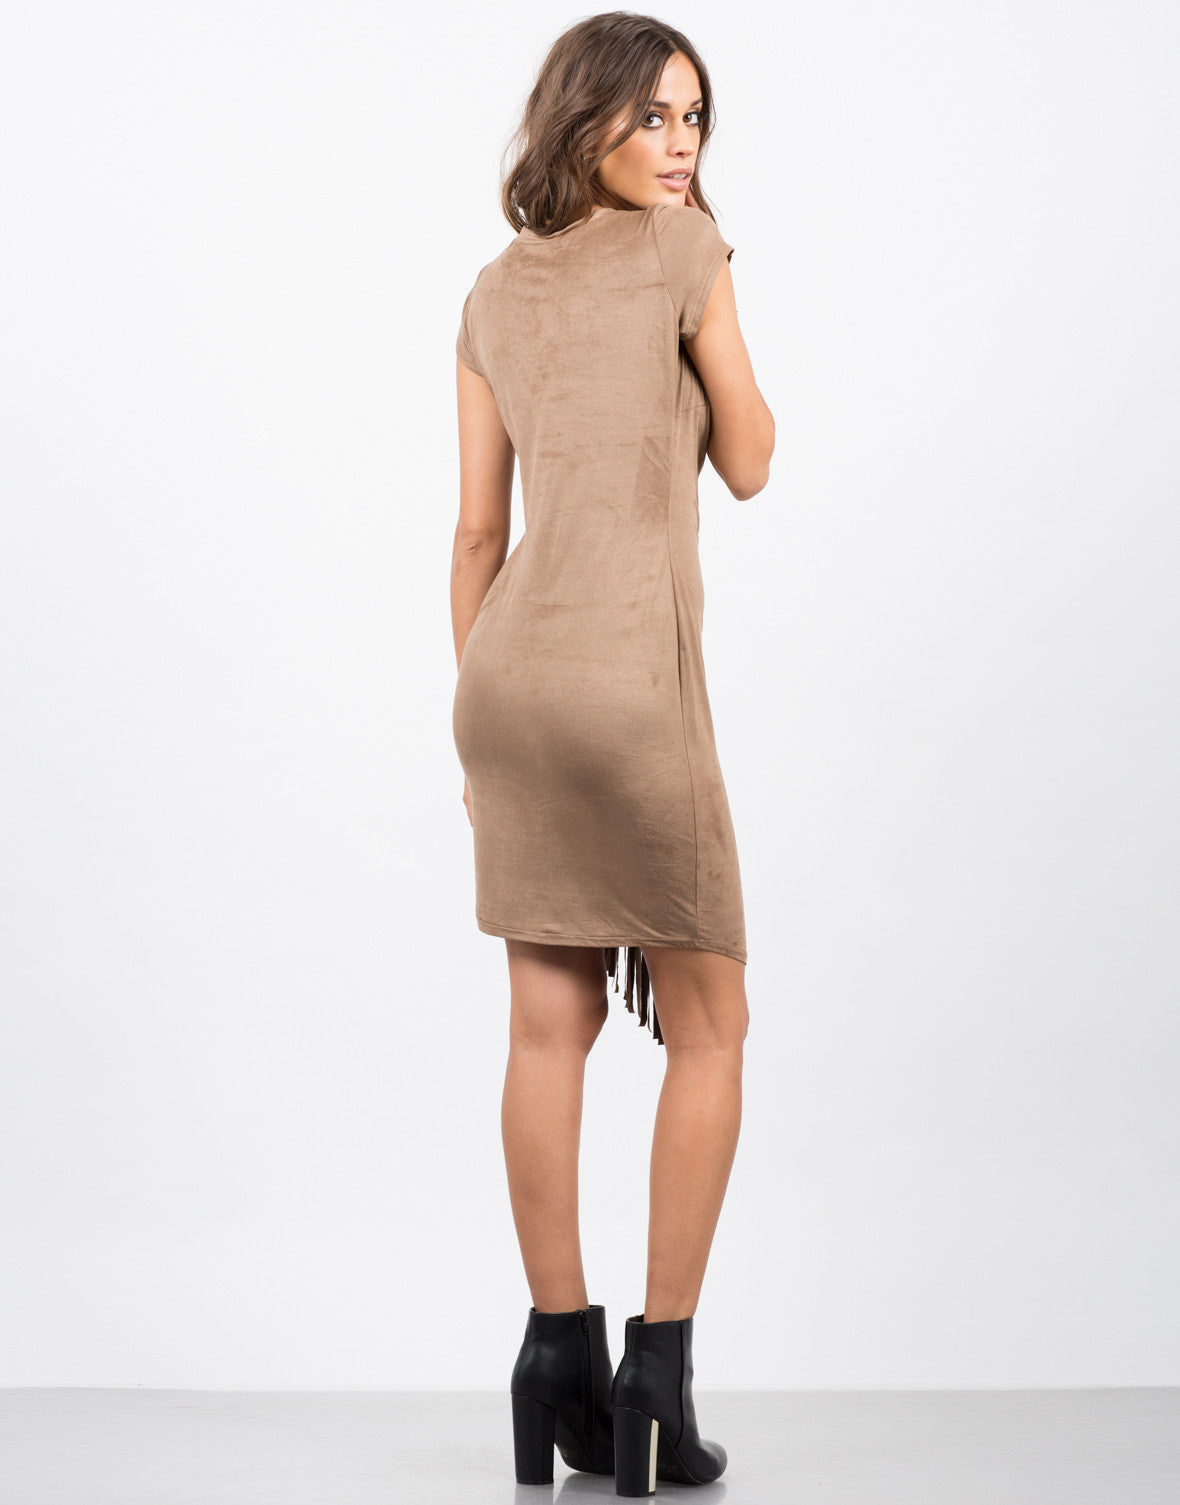 Back View of Side Fringe Tee Dress